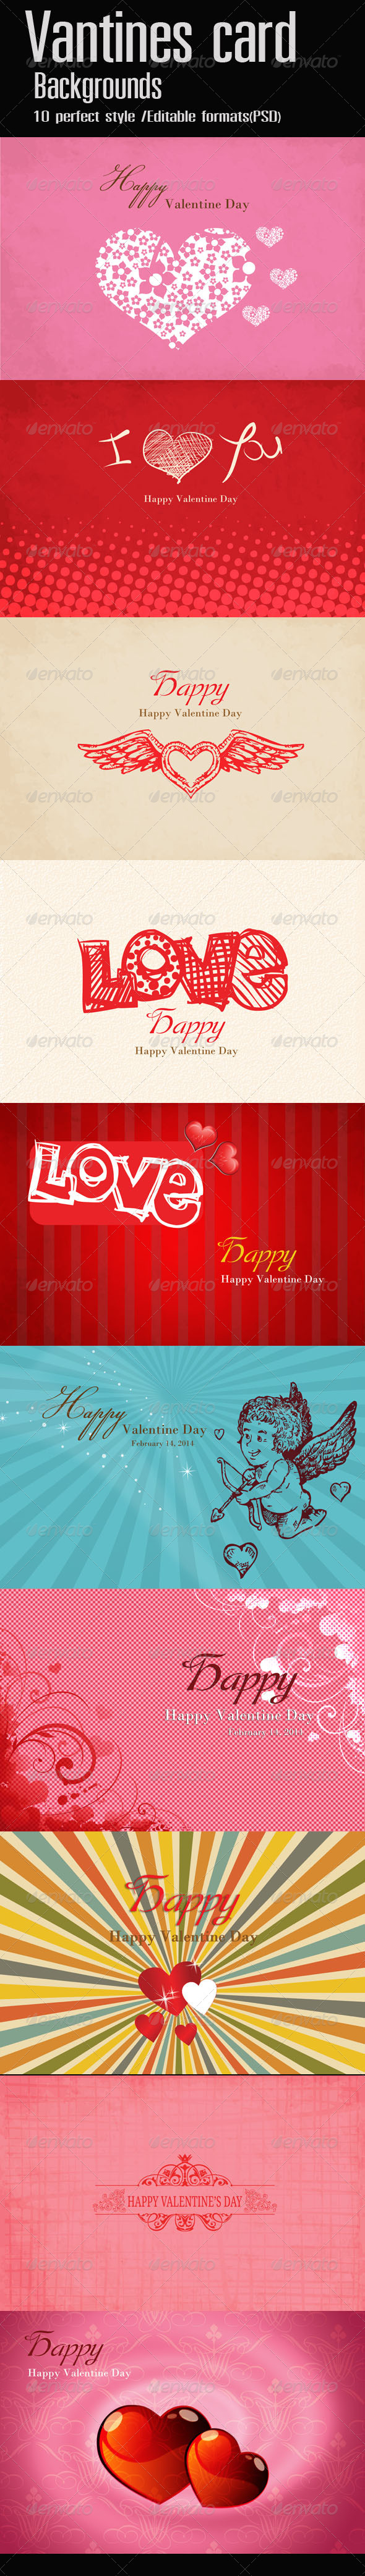 GraphicRiver Valentine Card Backgrounds 6535234